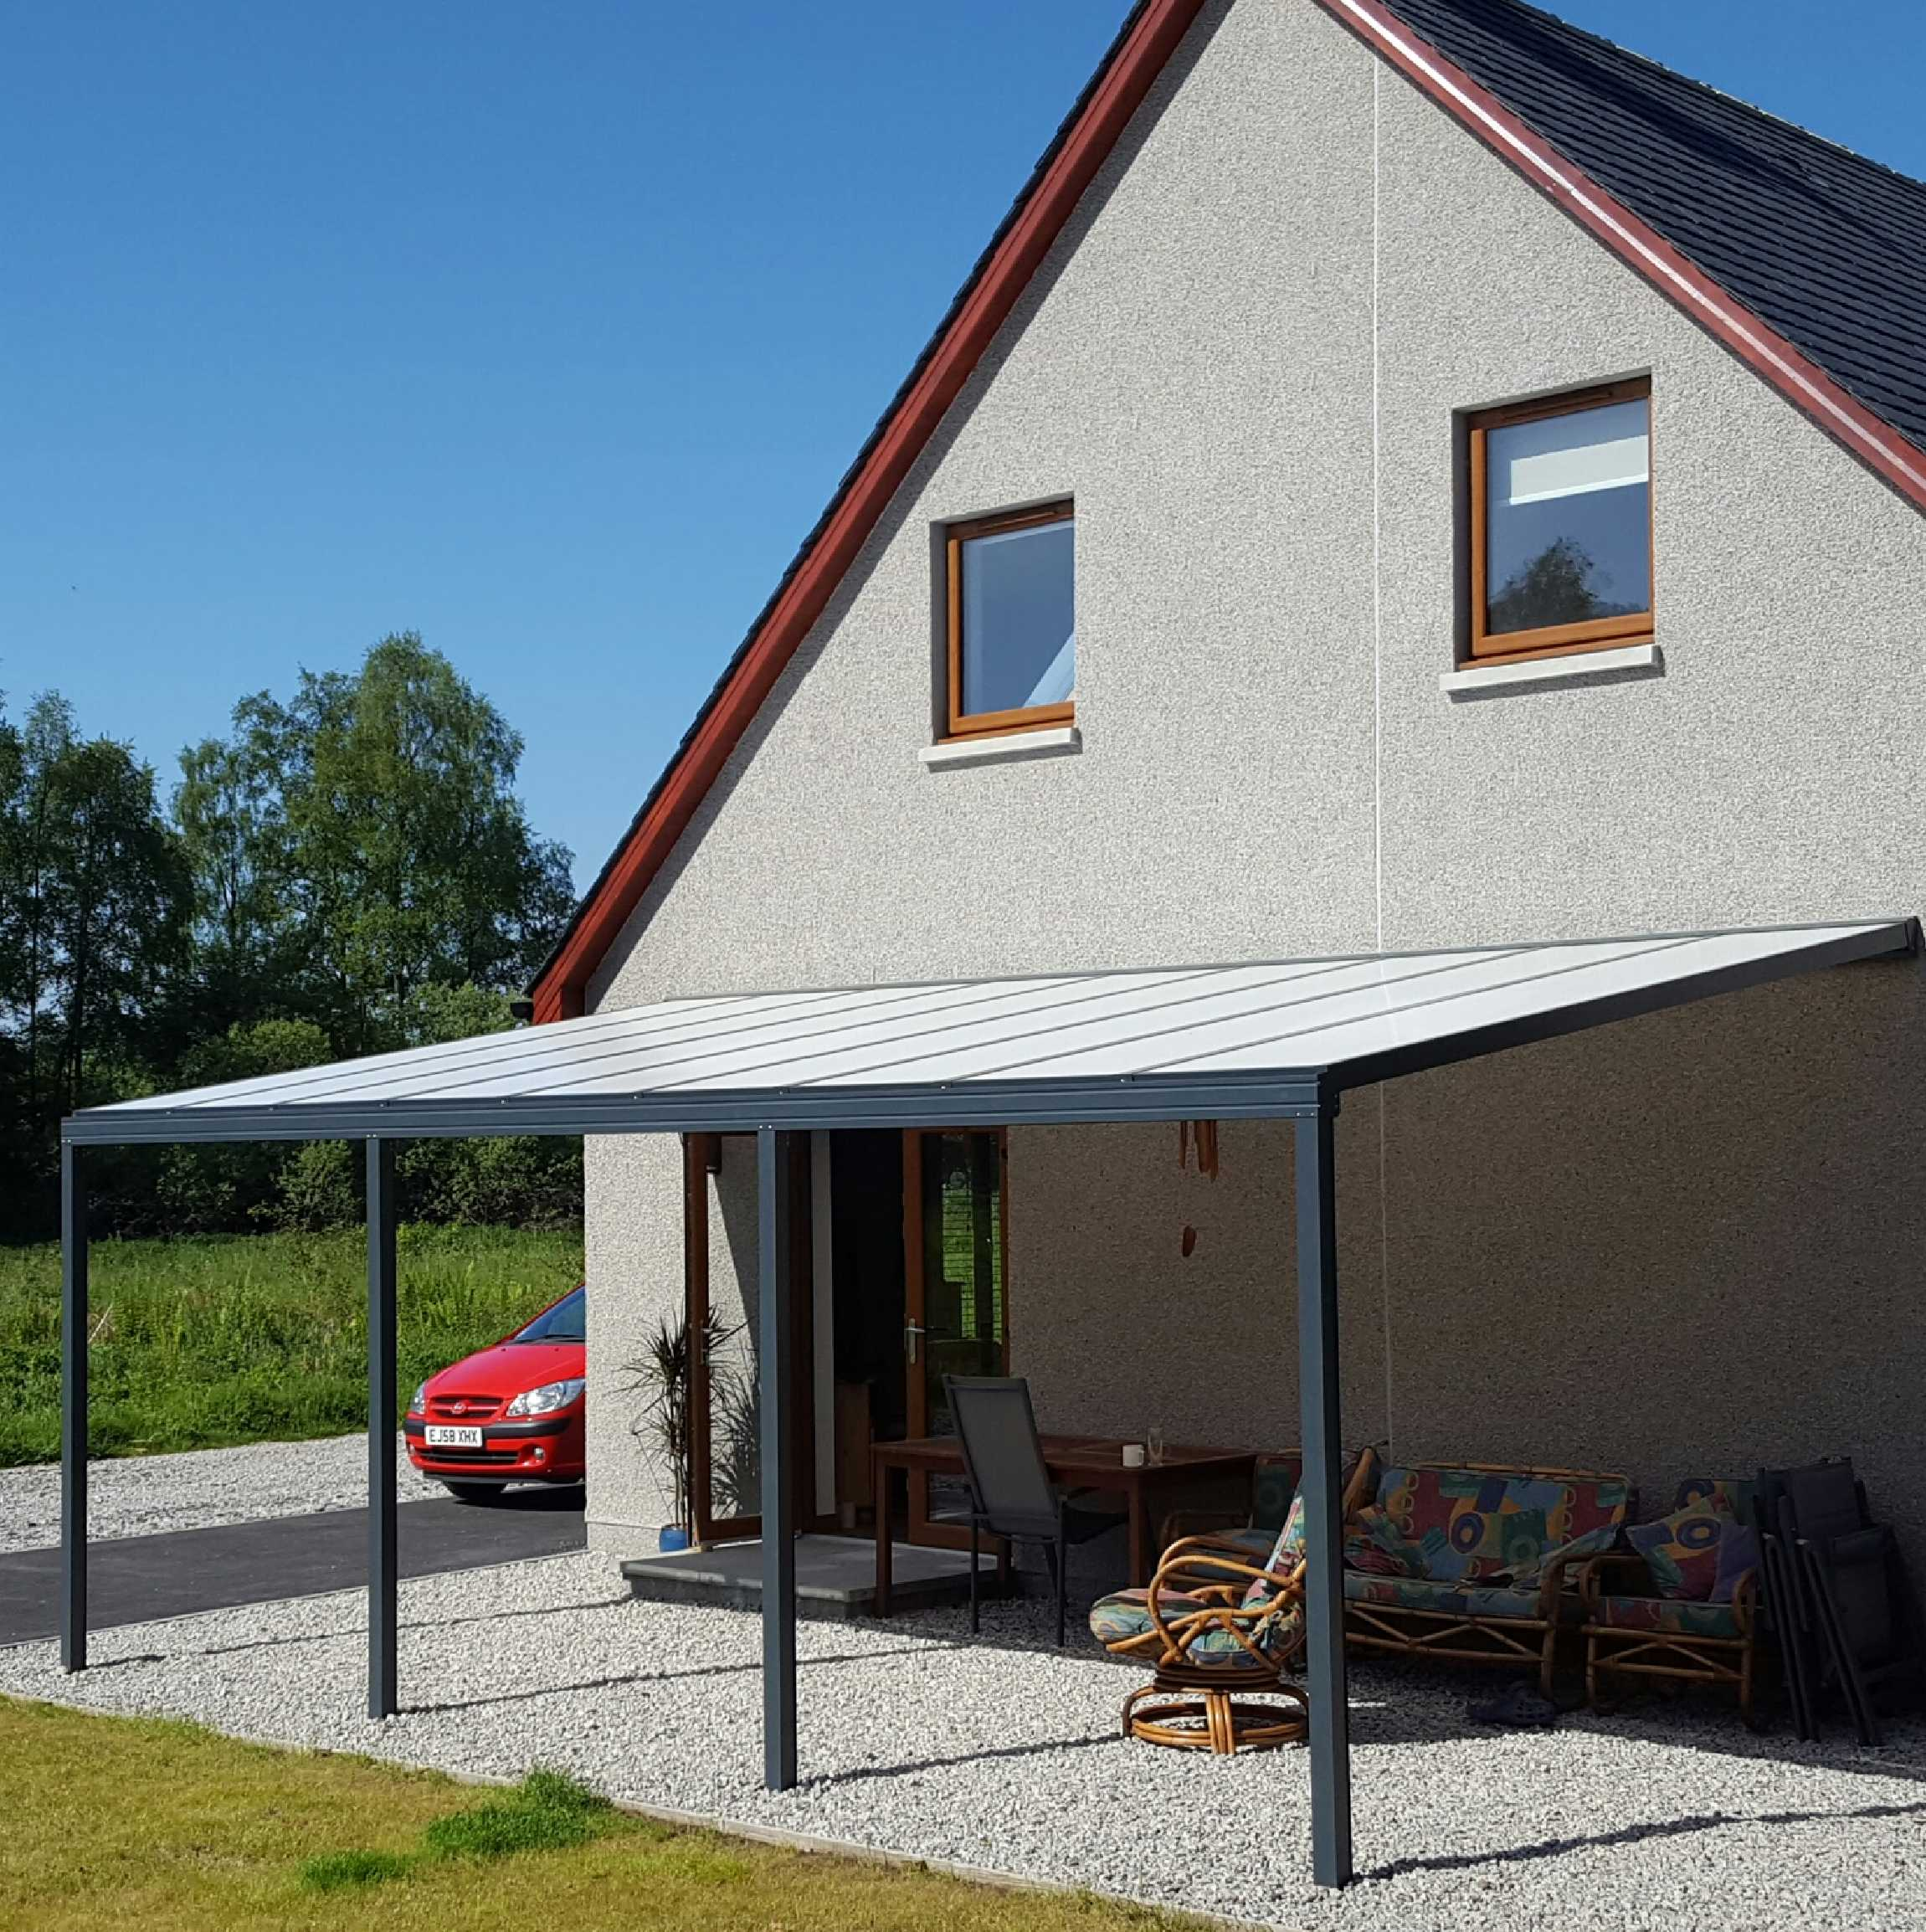 Great selection of Omega Smart Lean-To Canopy, Anthracite Grey, 16mm Polycarbonate Glazing - 8.4m (W) x 3.5m (P), (4) Supporting Posts